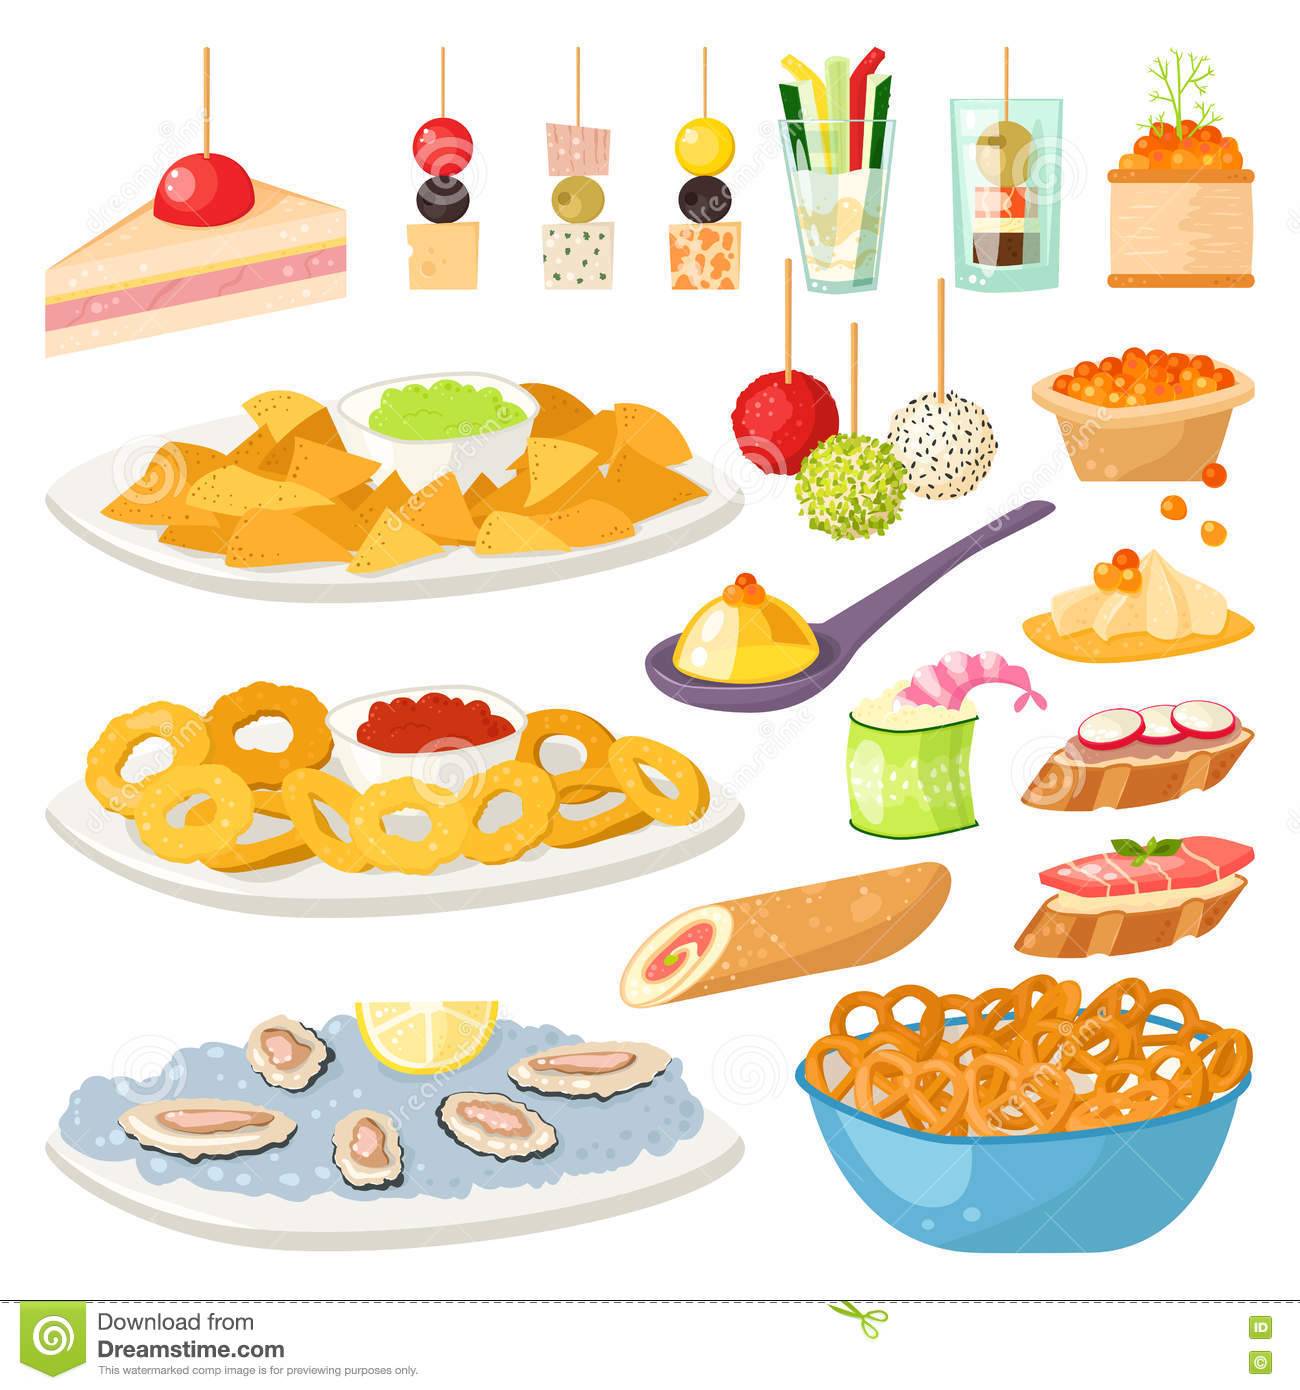 Tartlet cartoons illustrations vector stock images 88 for Canape vector download